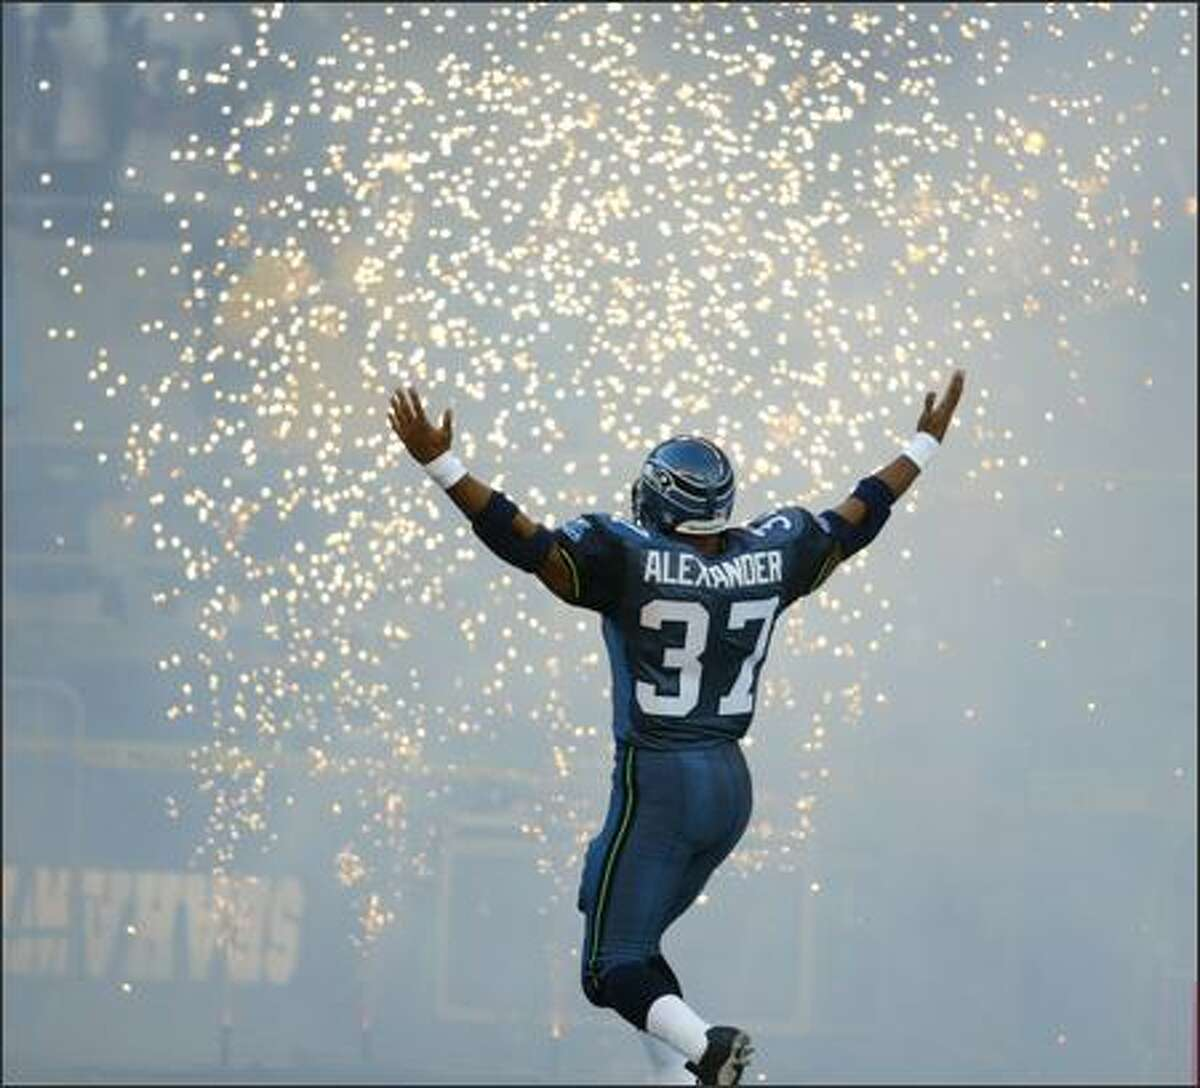 Accompanied by fireworks, Shaun Alexander encourages the crowd at Qwest Field to cheer as he is introduced before the Seahawks' game against the Atlanta Falcons. The Seahawks won 28-26.